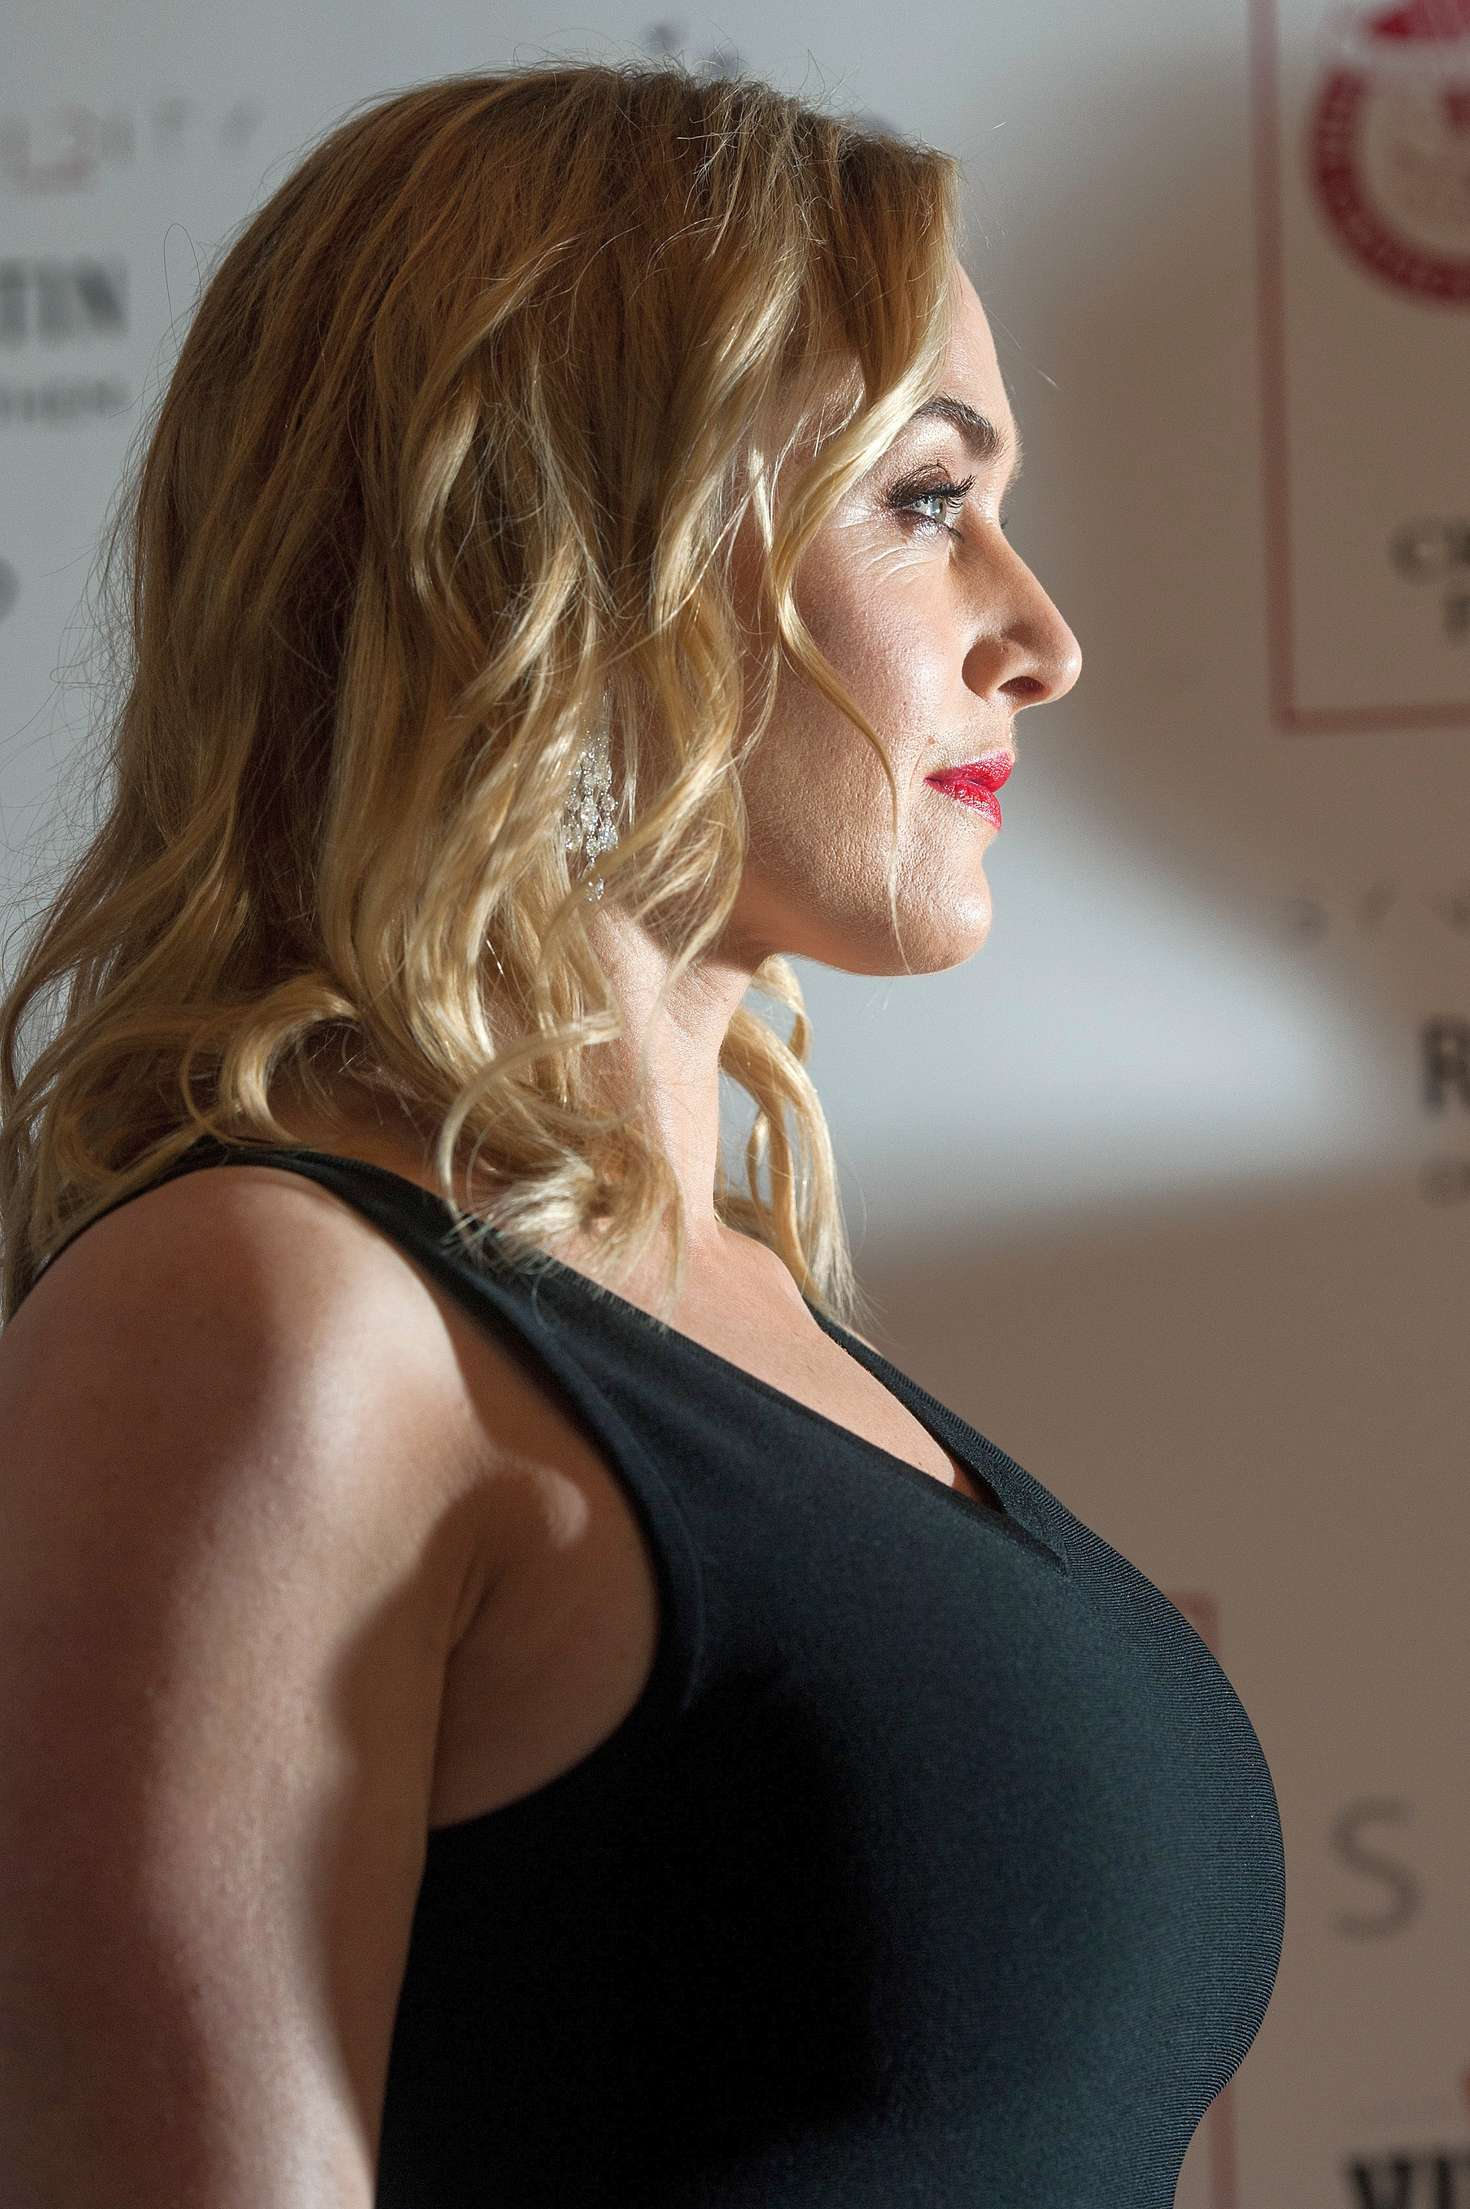 Kate Winslet photo #699458